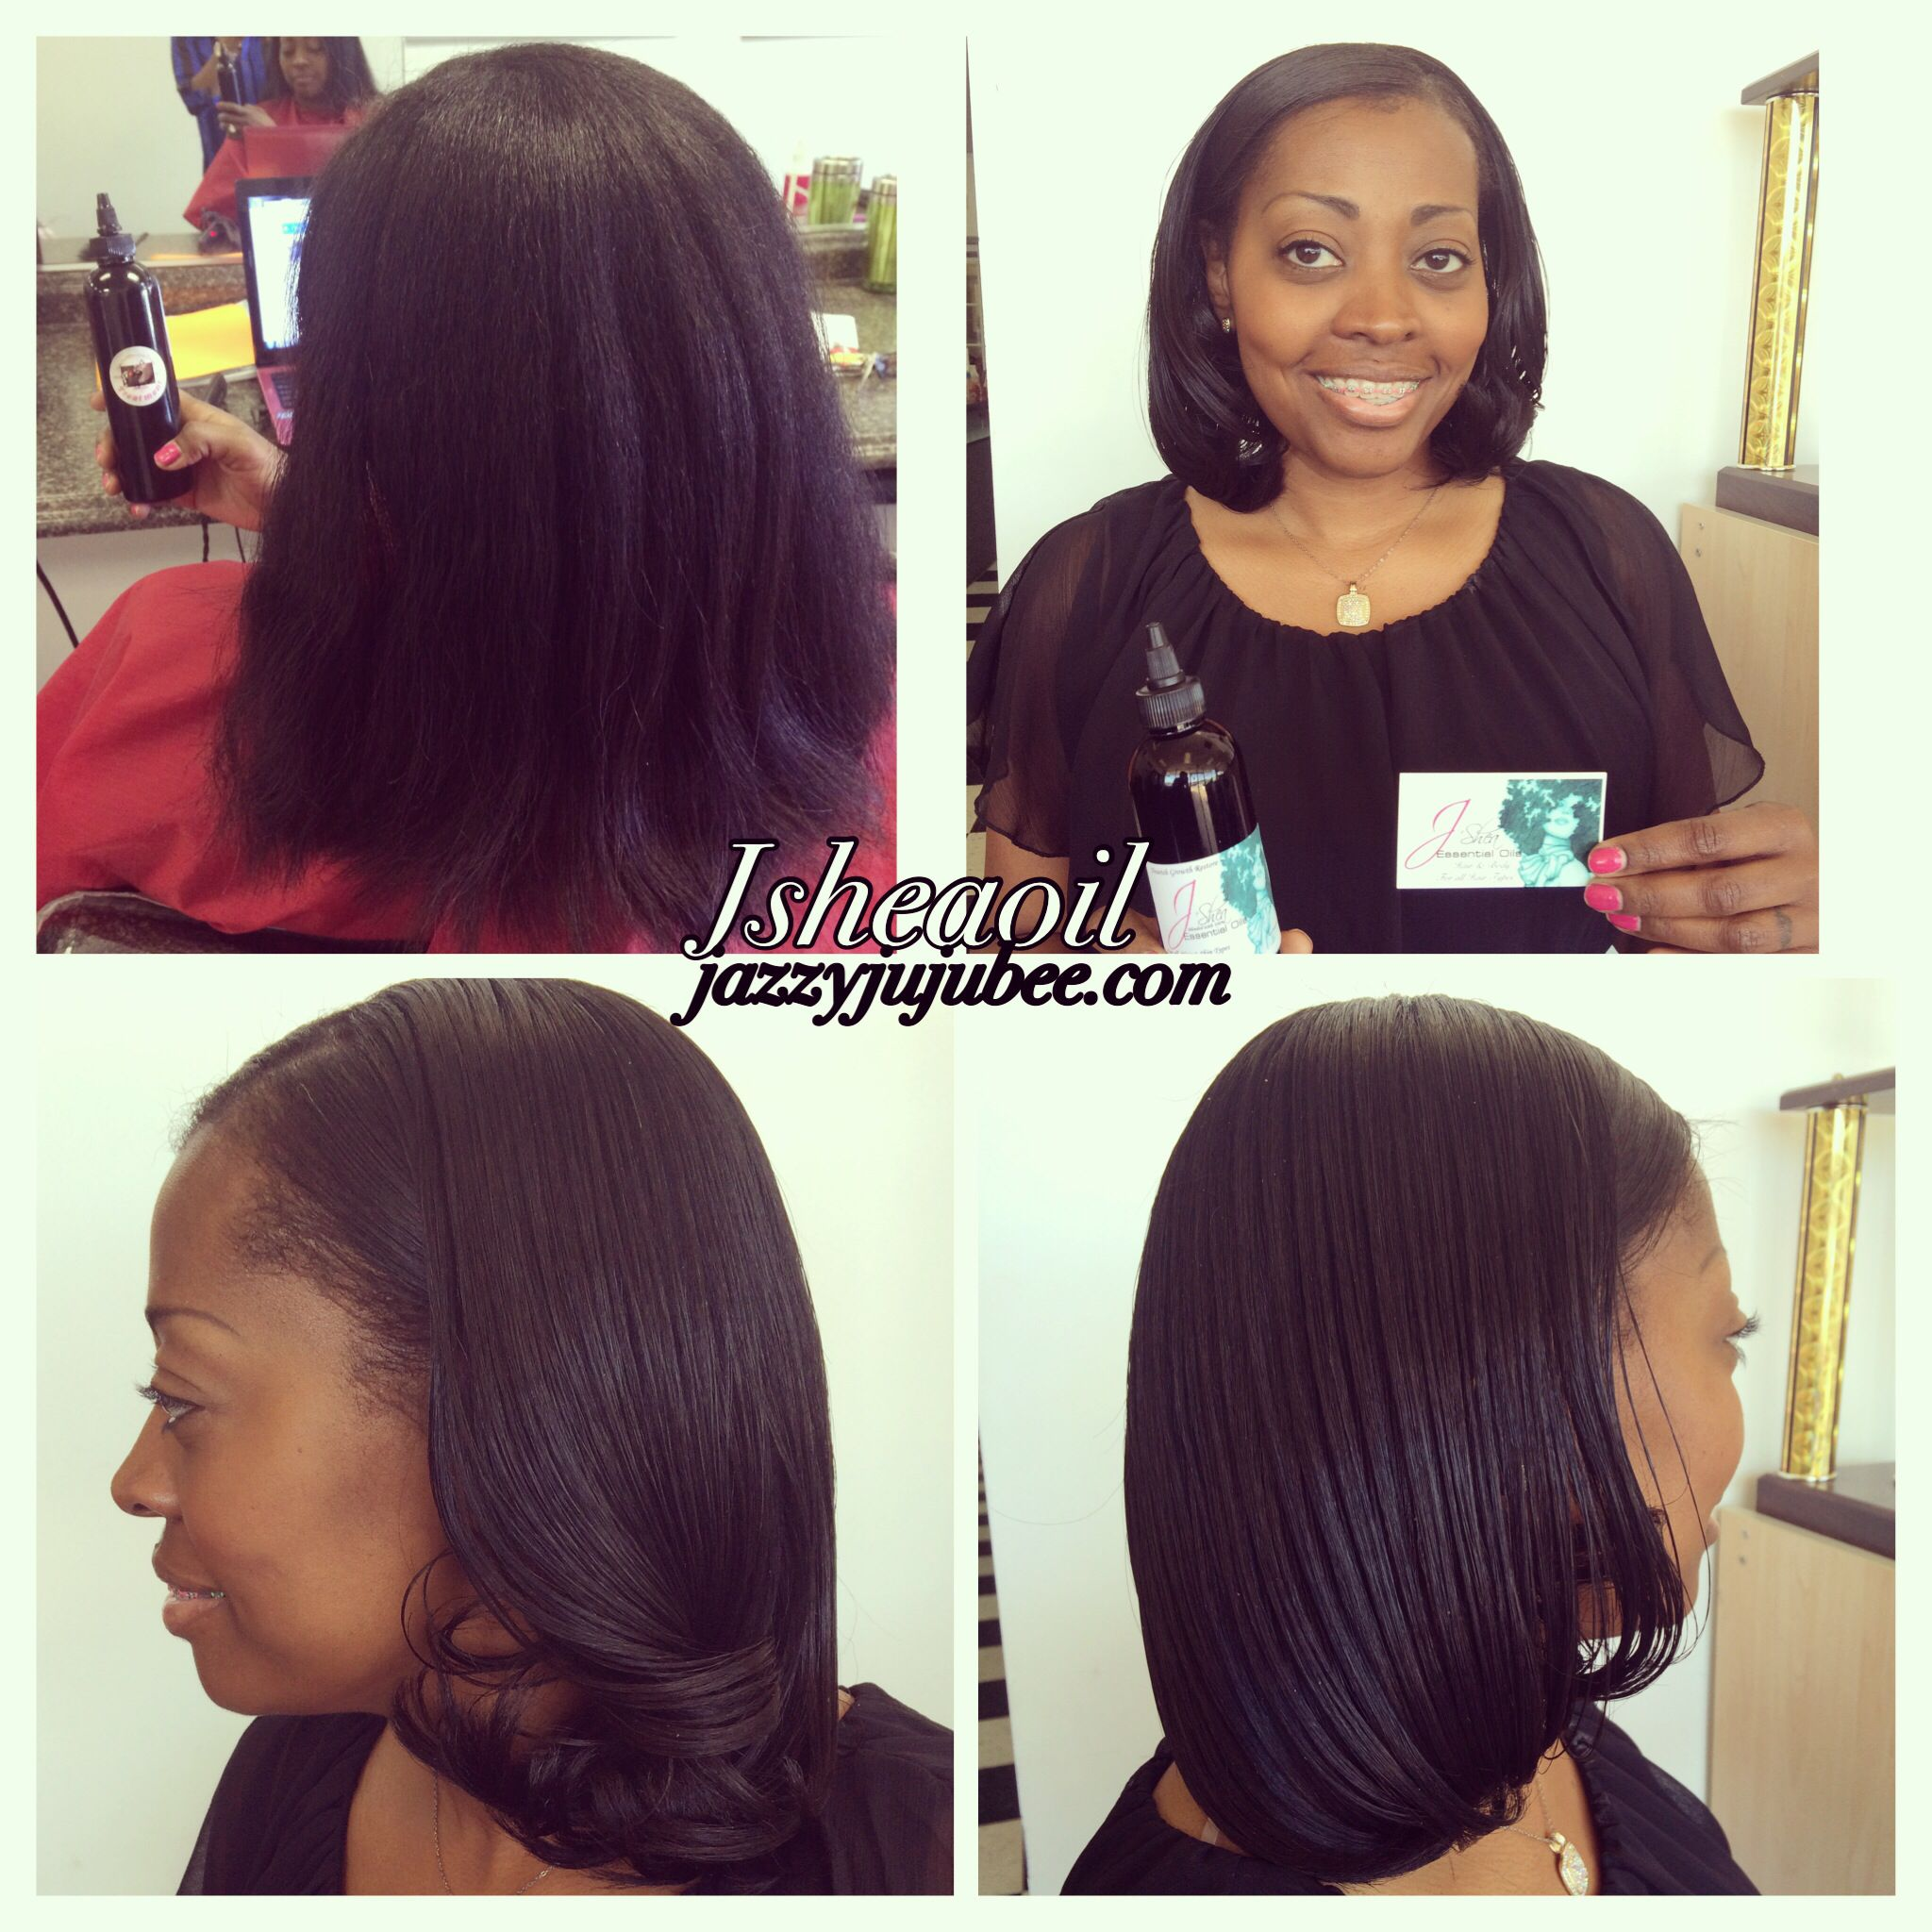 Jazzyjujubee suffering with thining balding breakage dry scalp transitioning from relaxed to natural or relaxed hair benefits revive your hair extensions helps frizzy hair hairgrowth heatprotectant pmusecretfo Gallery